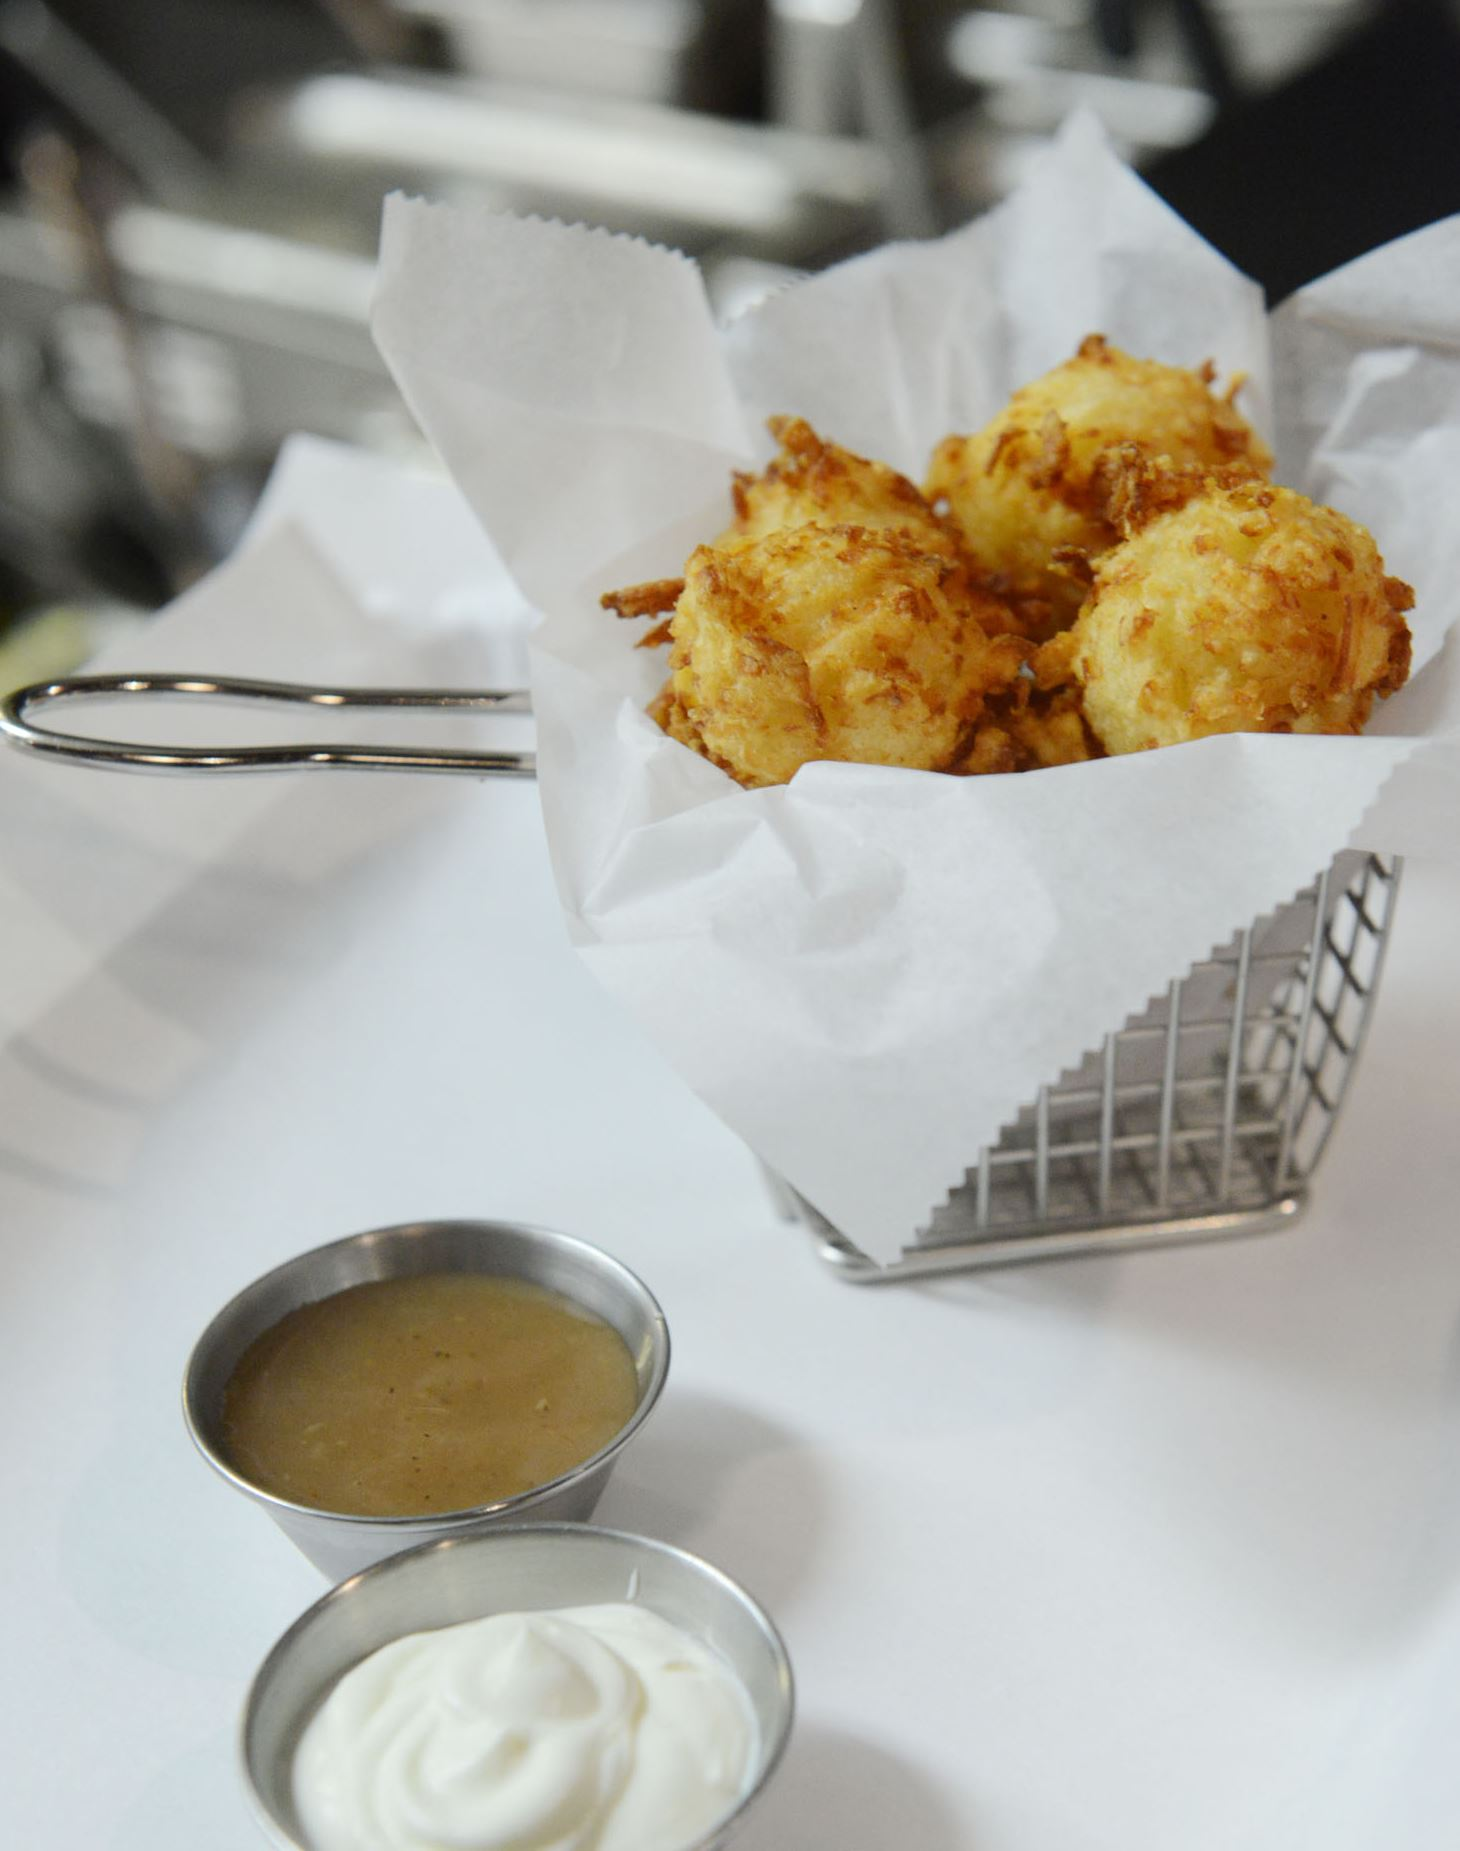 Latketots These are the latke tots from Nu Jewish Bistro in Squirrel Hill.